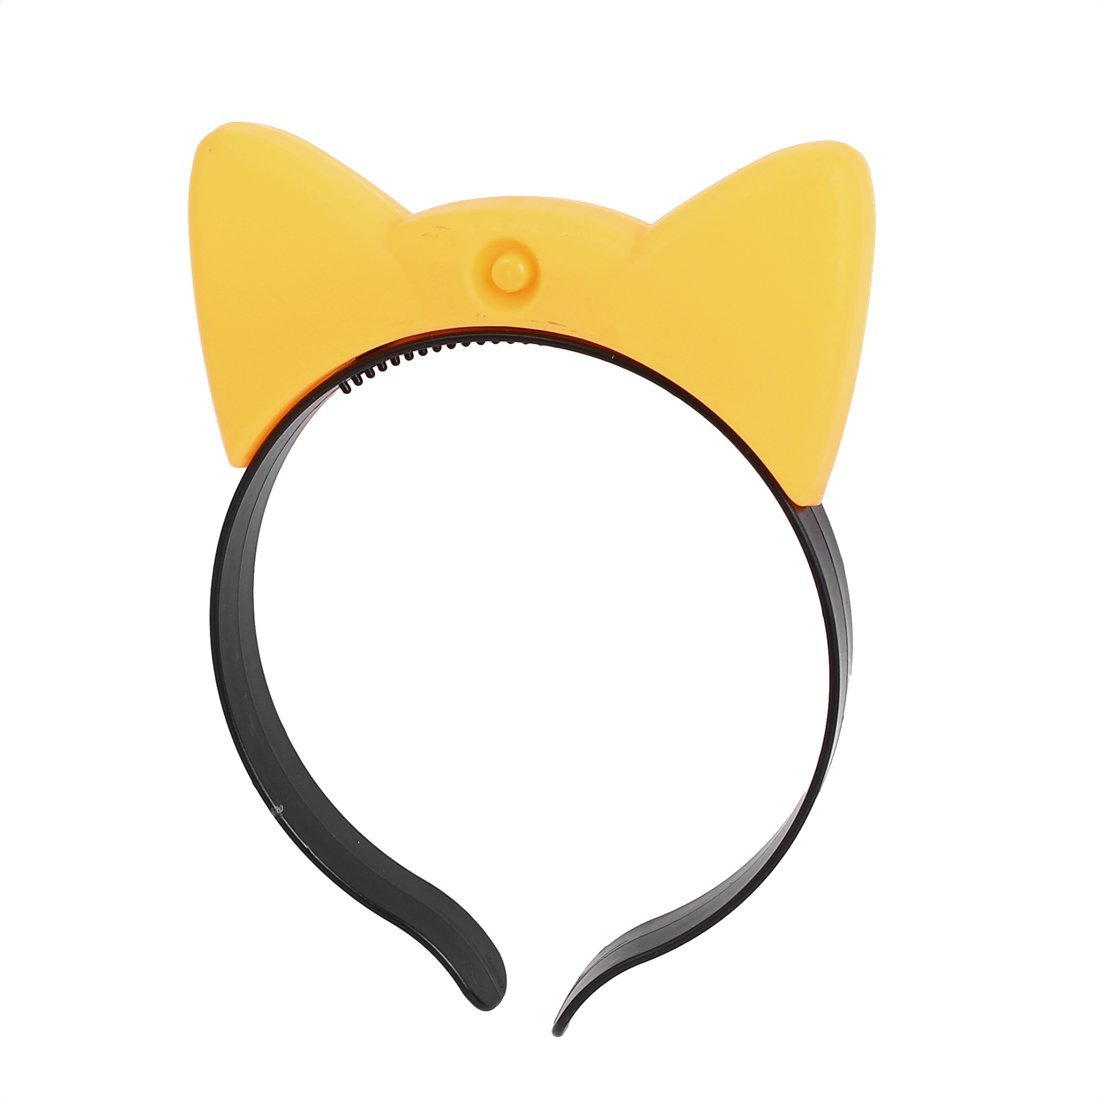 Amazon.com: Oído eDealMax Partido de Cosplay del gato que destella de Luces Pelo de la Venda Hairband Amarillo: Health & Personal Care